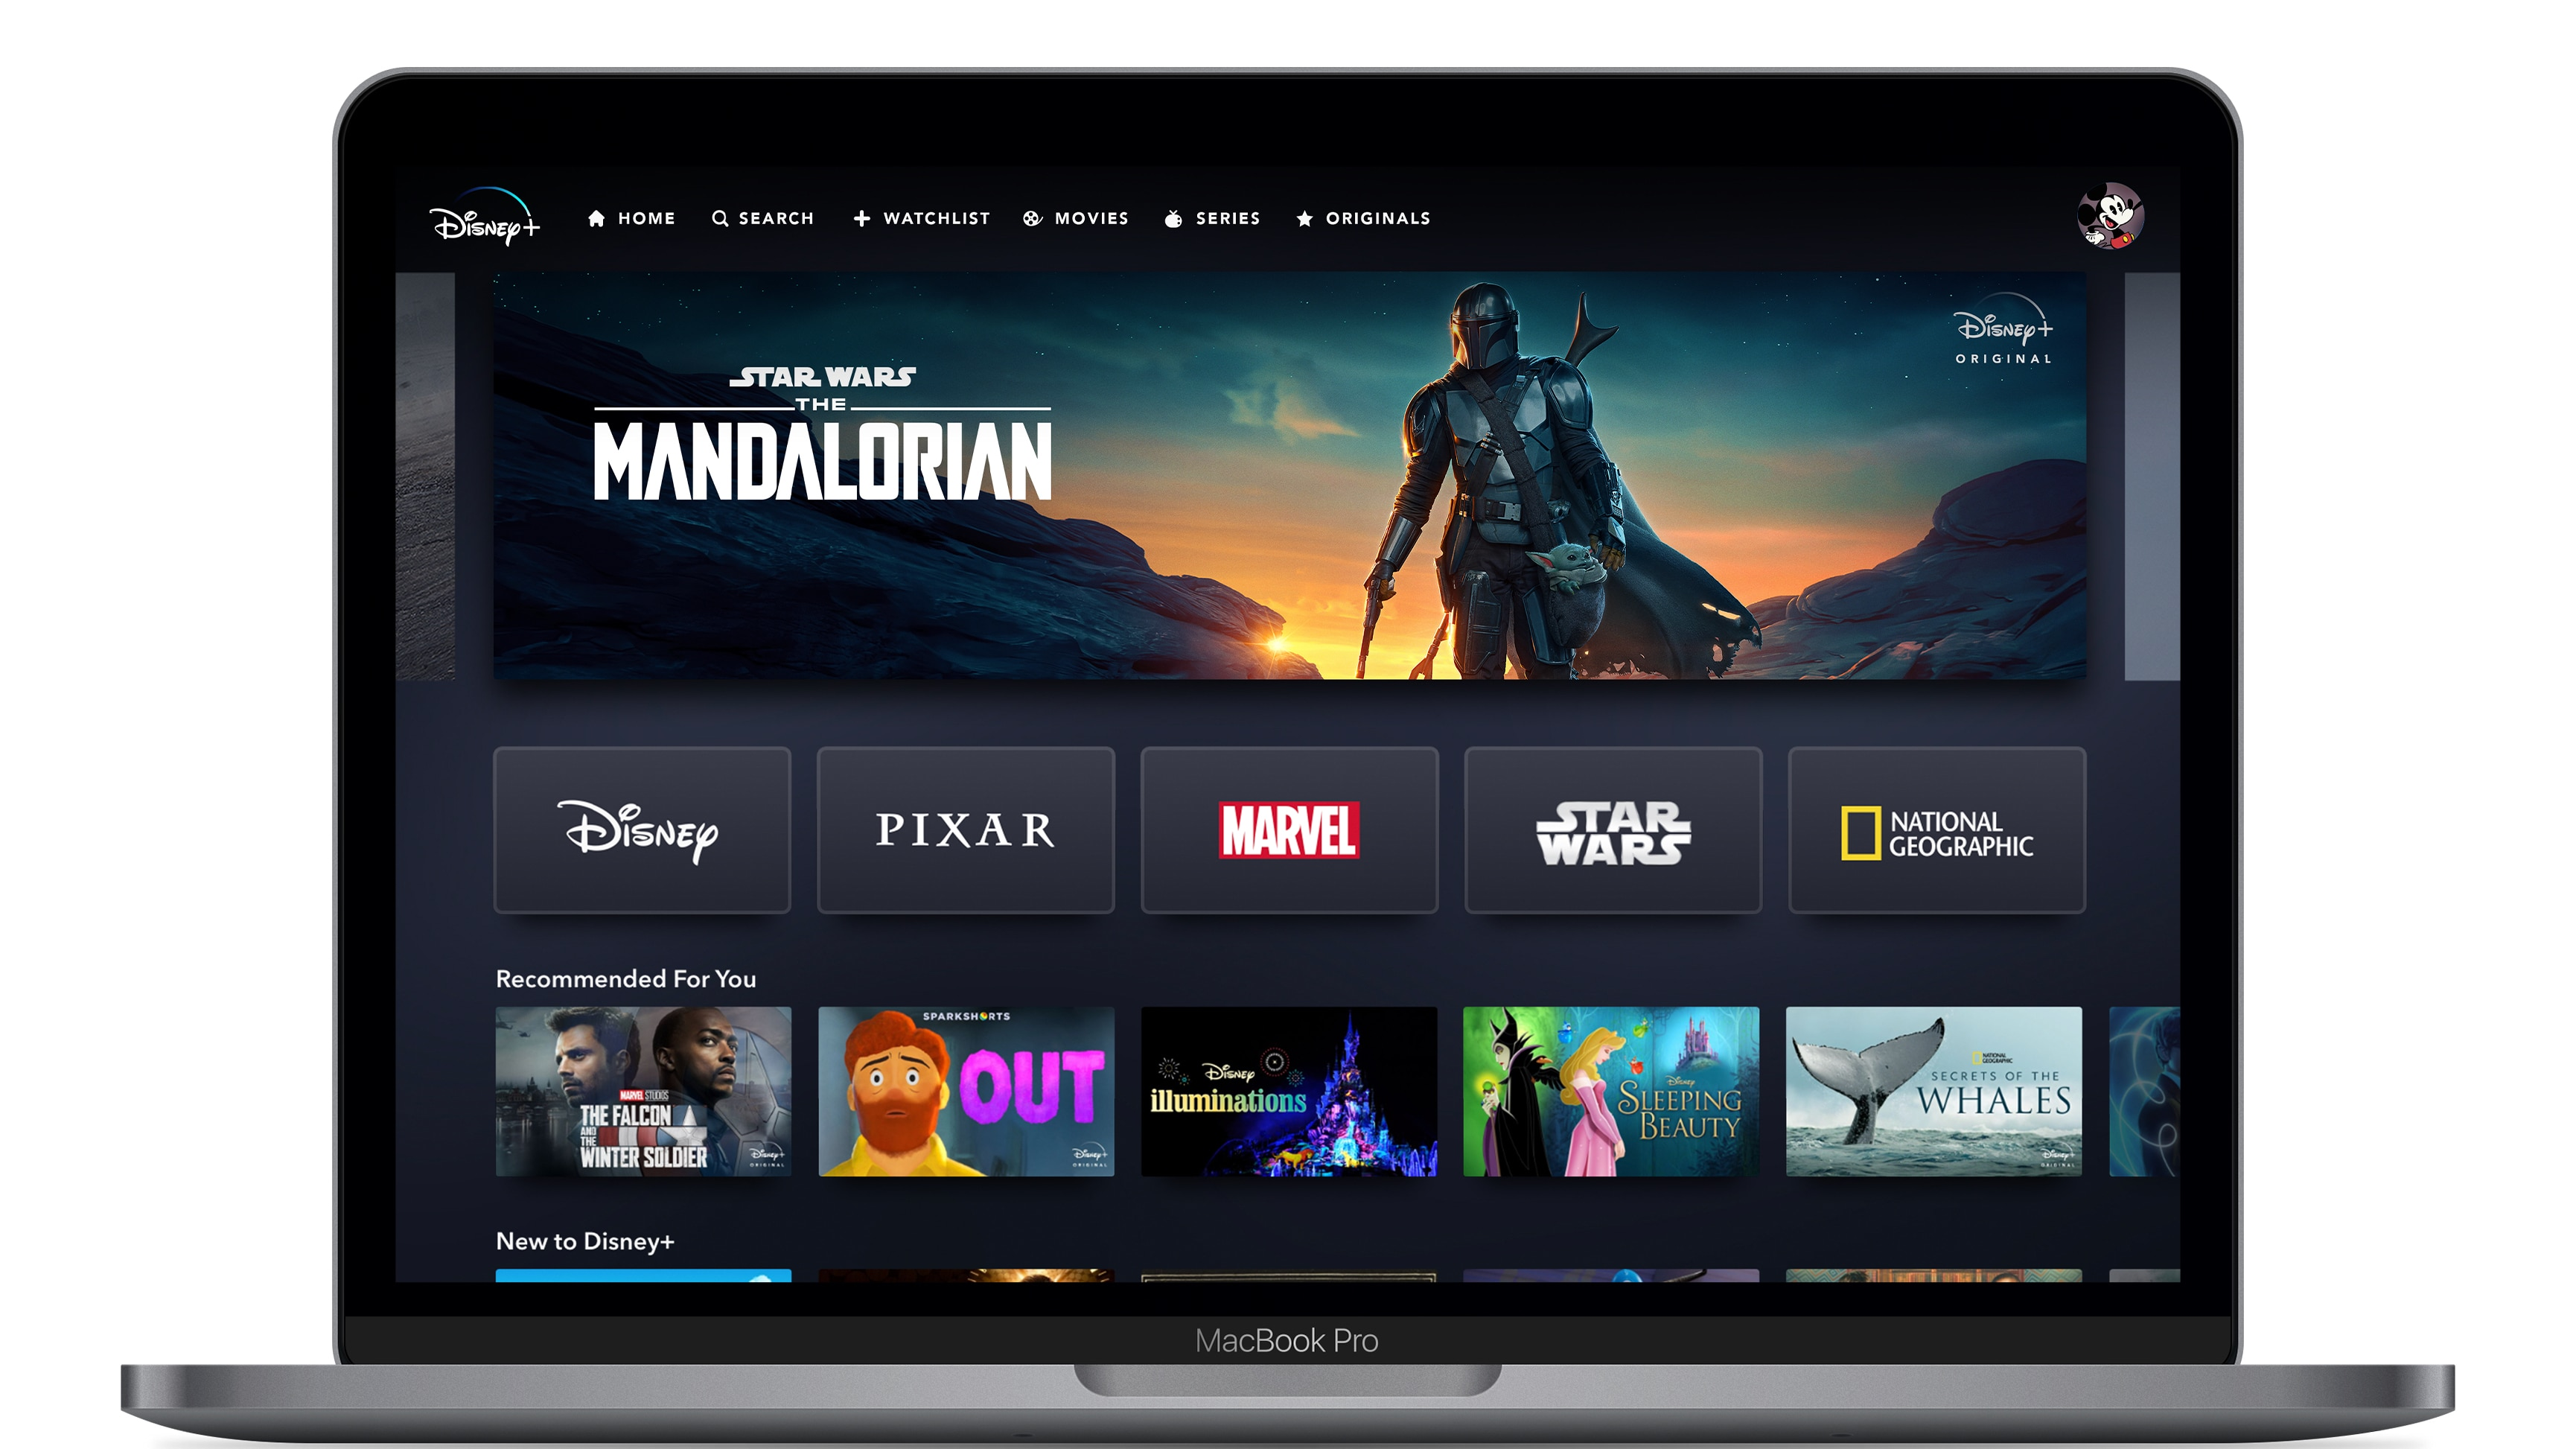 Disney+ App Home Page on Web Device